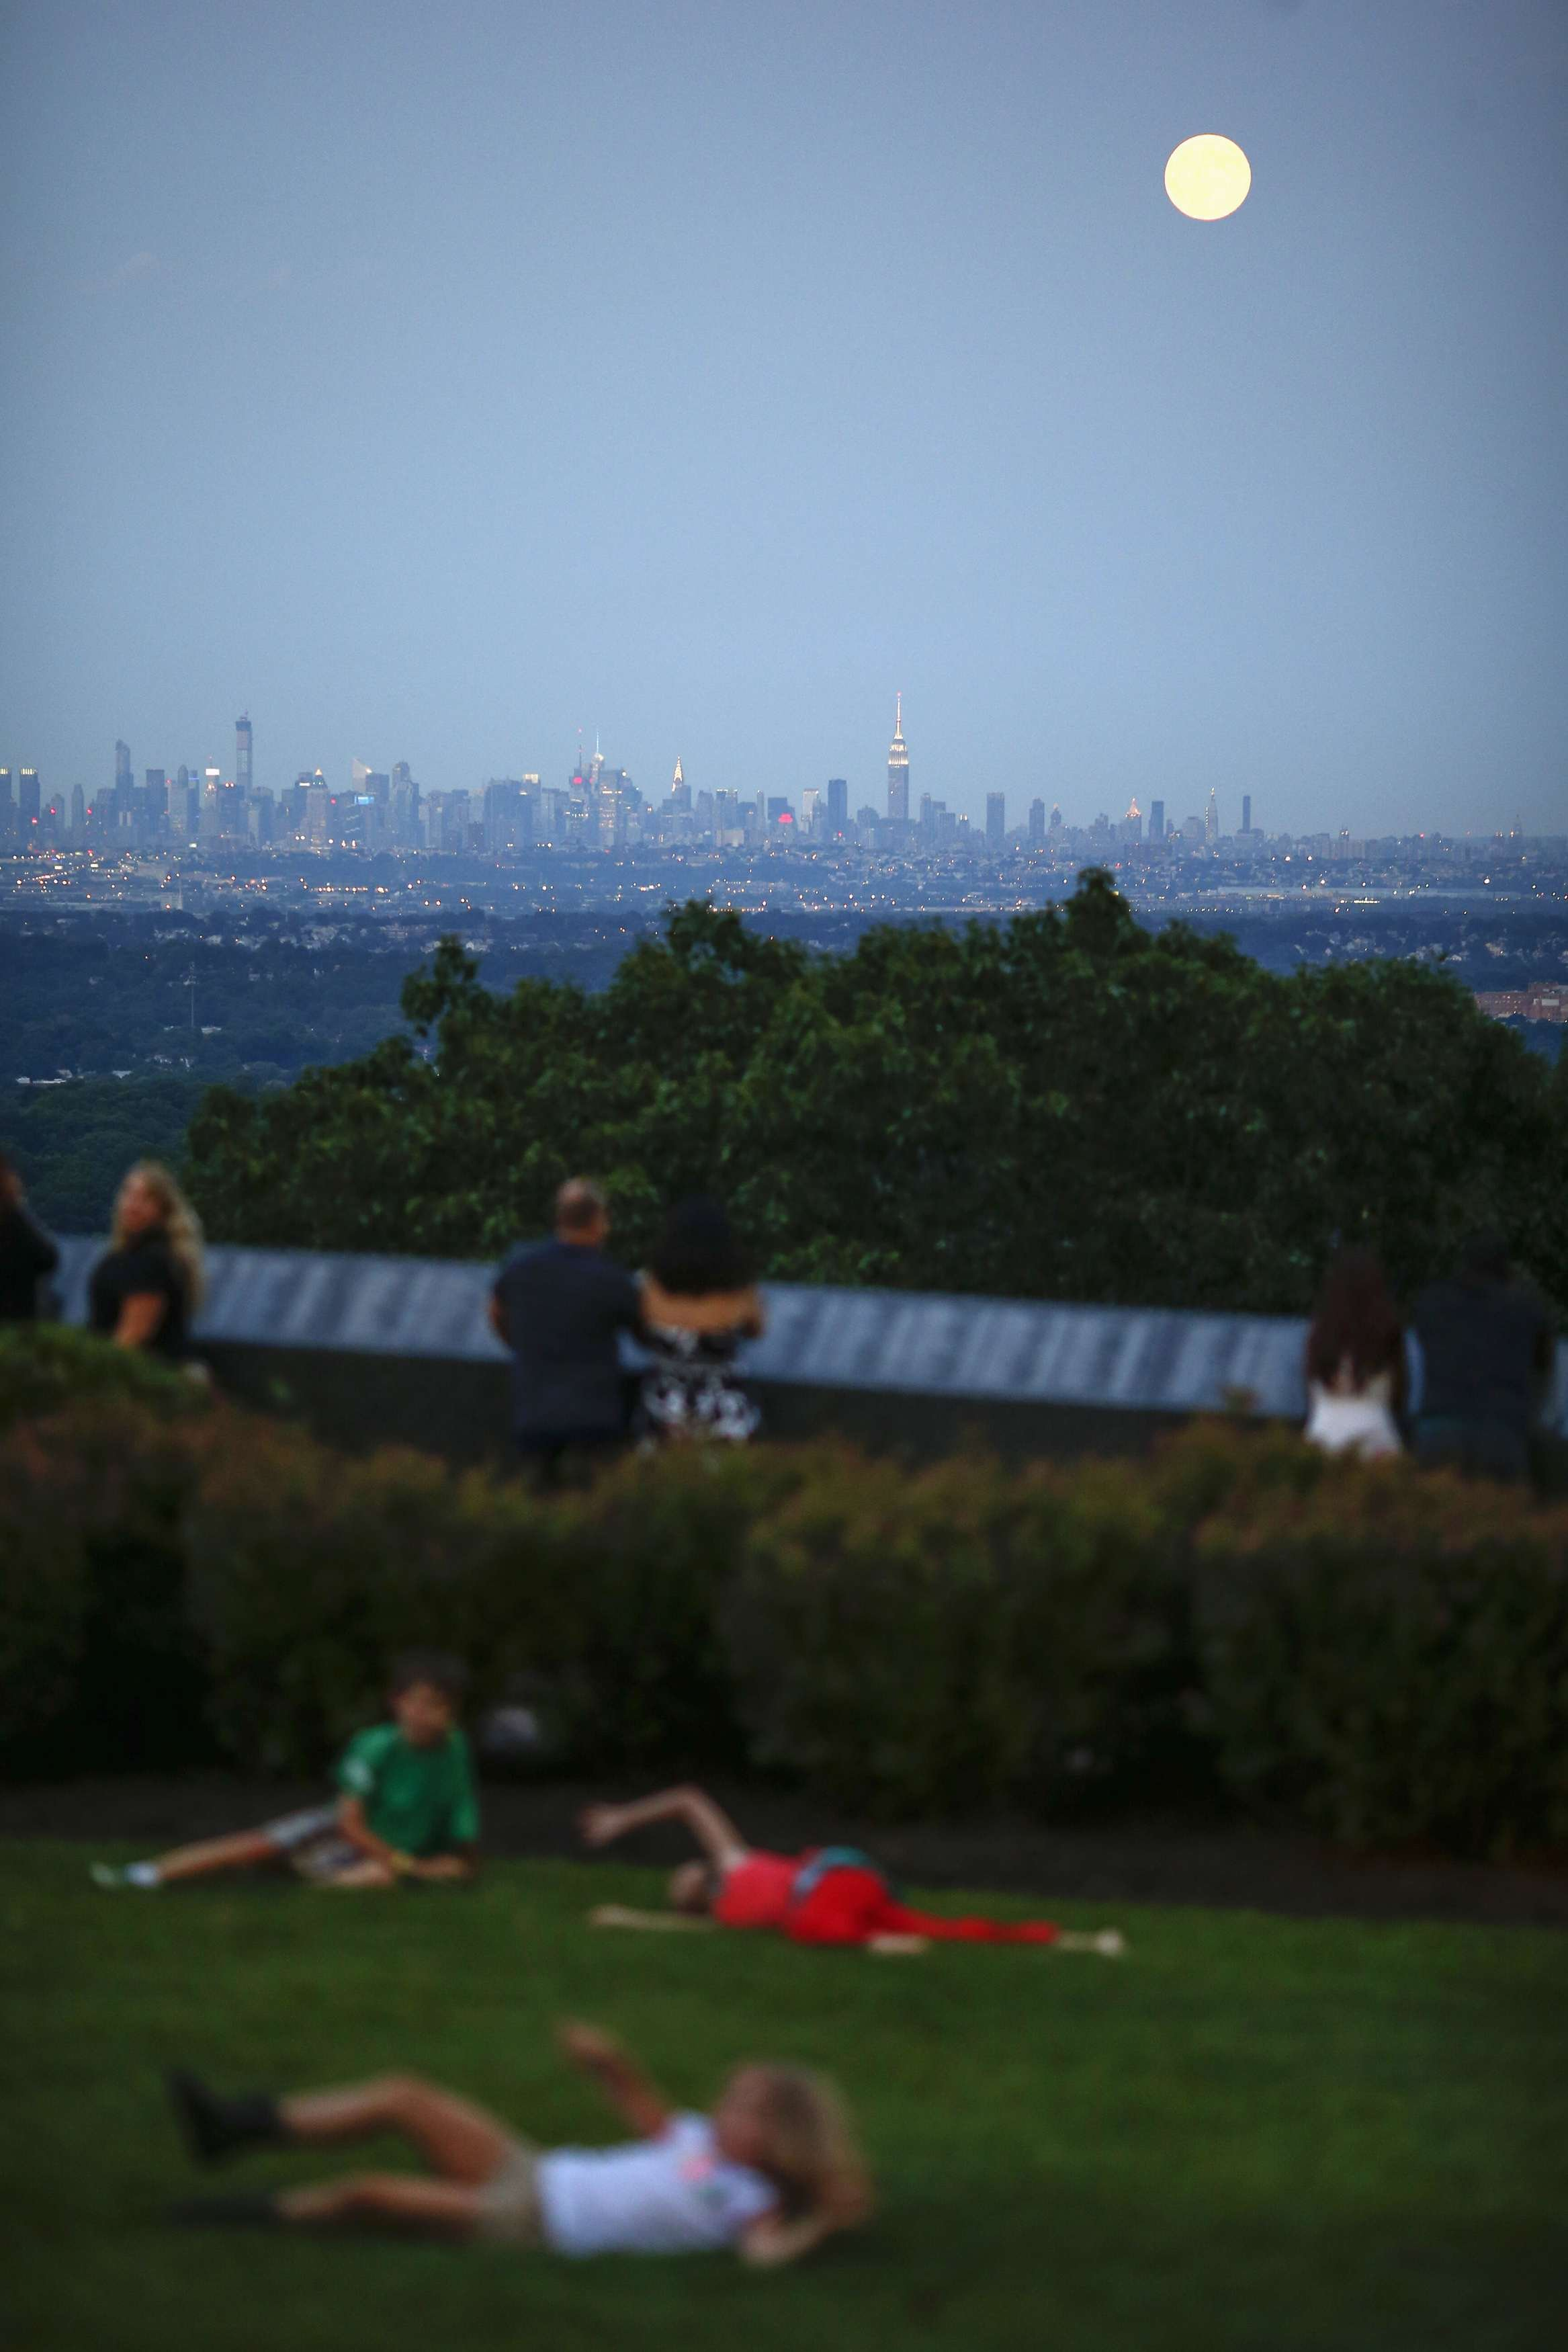 Children play on the grass while a full moon known as  supermoon  rises over the skyline of New York and the Empire State Building, as seen from the Eagle Rock Reservation in West Orange, New Jersey on August 10, 2014.